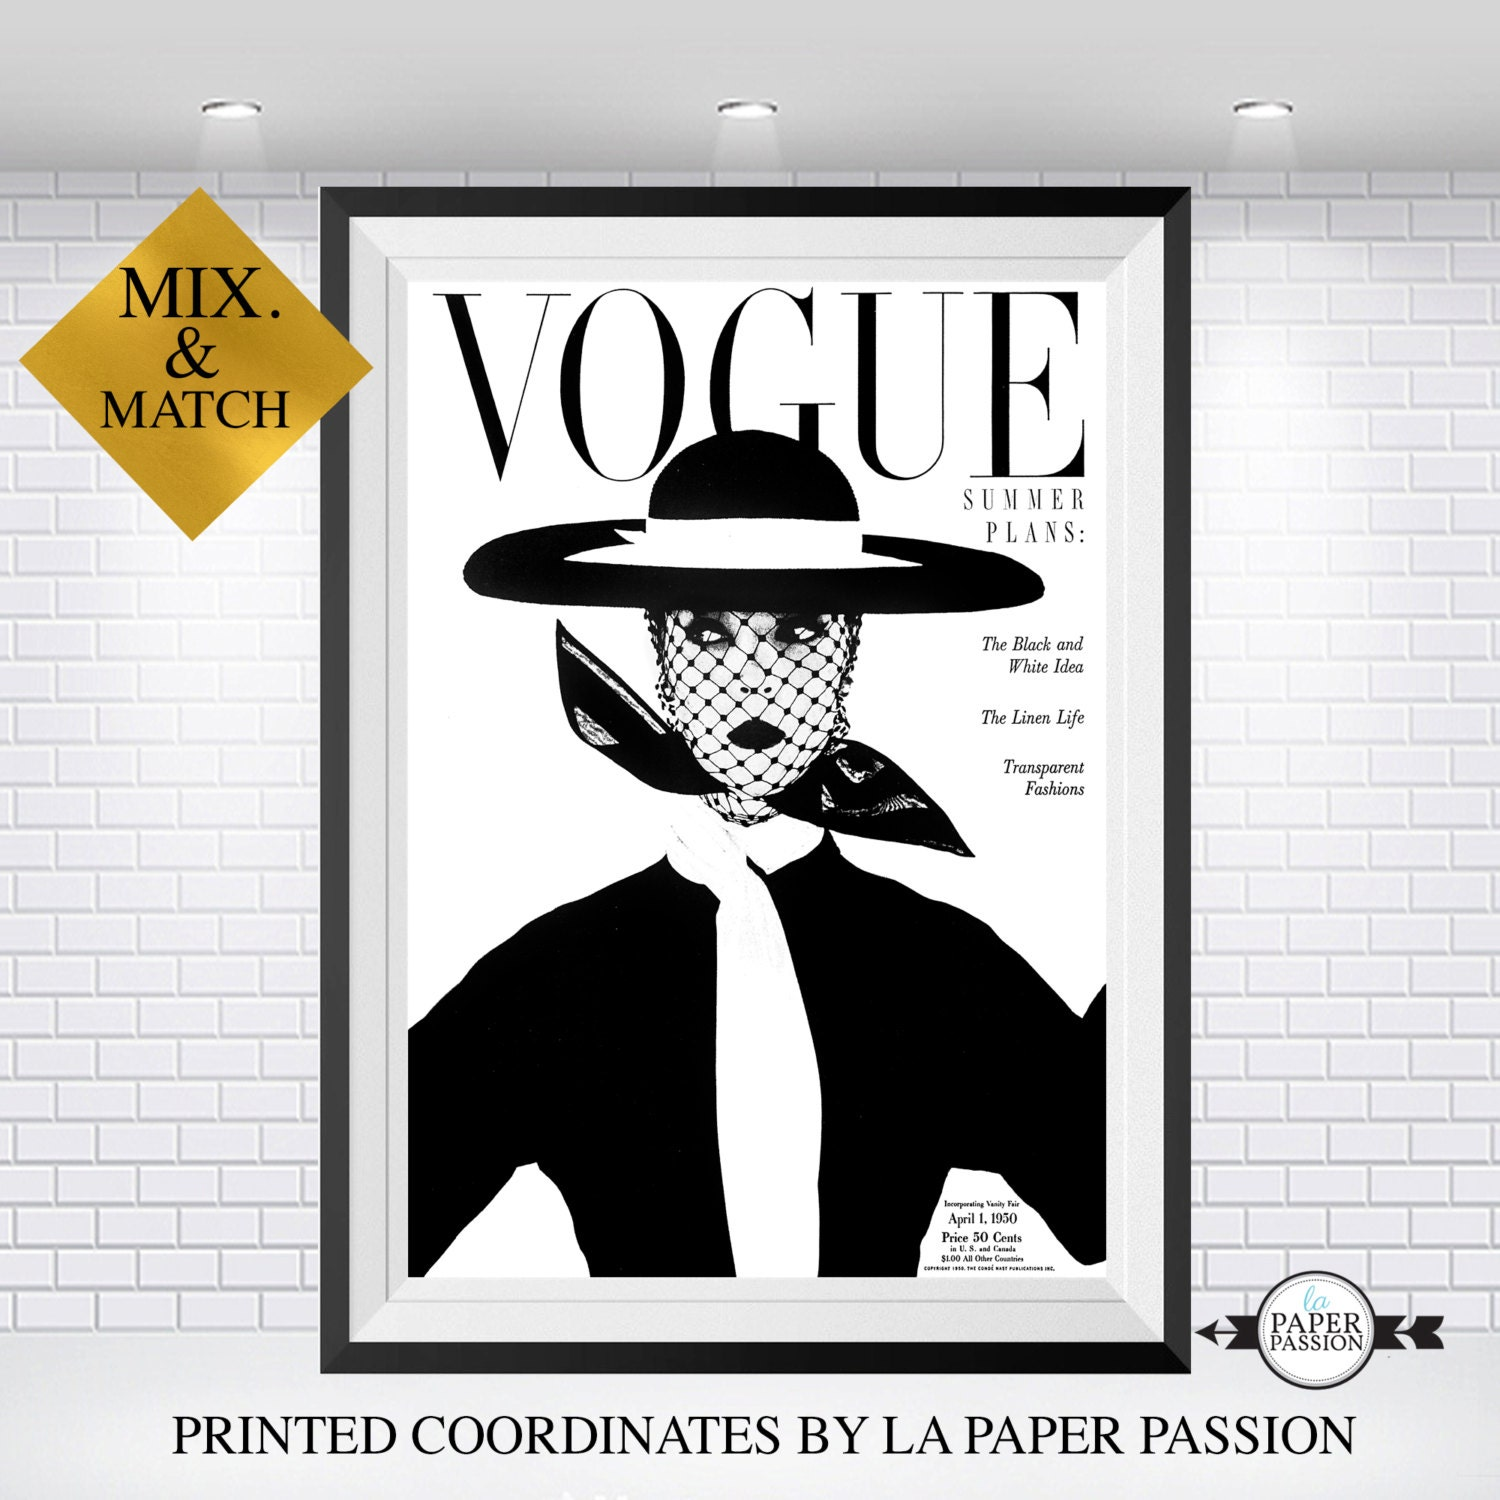 Vogue vogue poster vogue print vogue home decor vogue wall Home decor wall decor australia